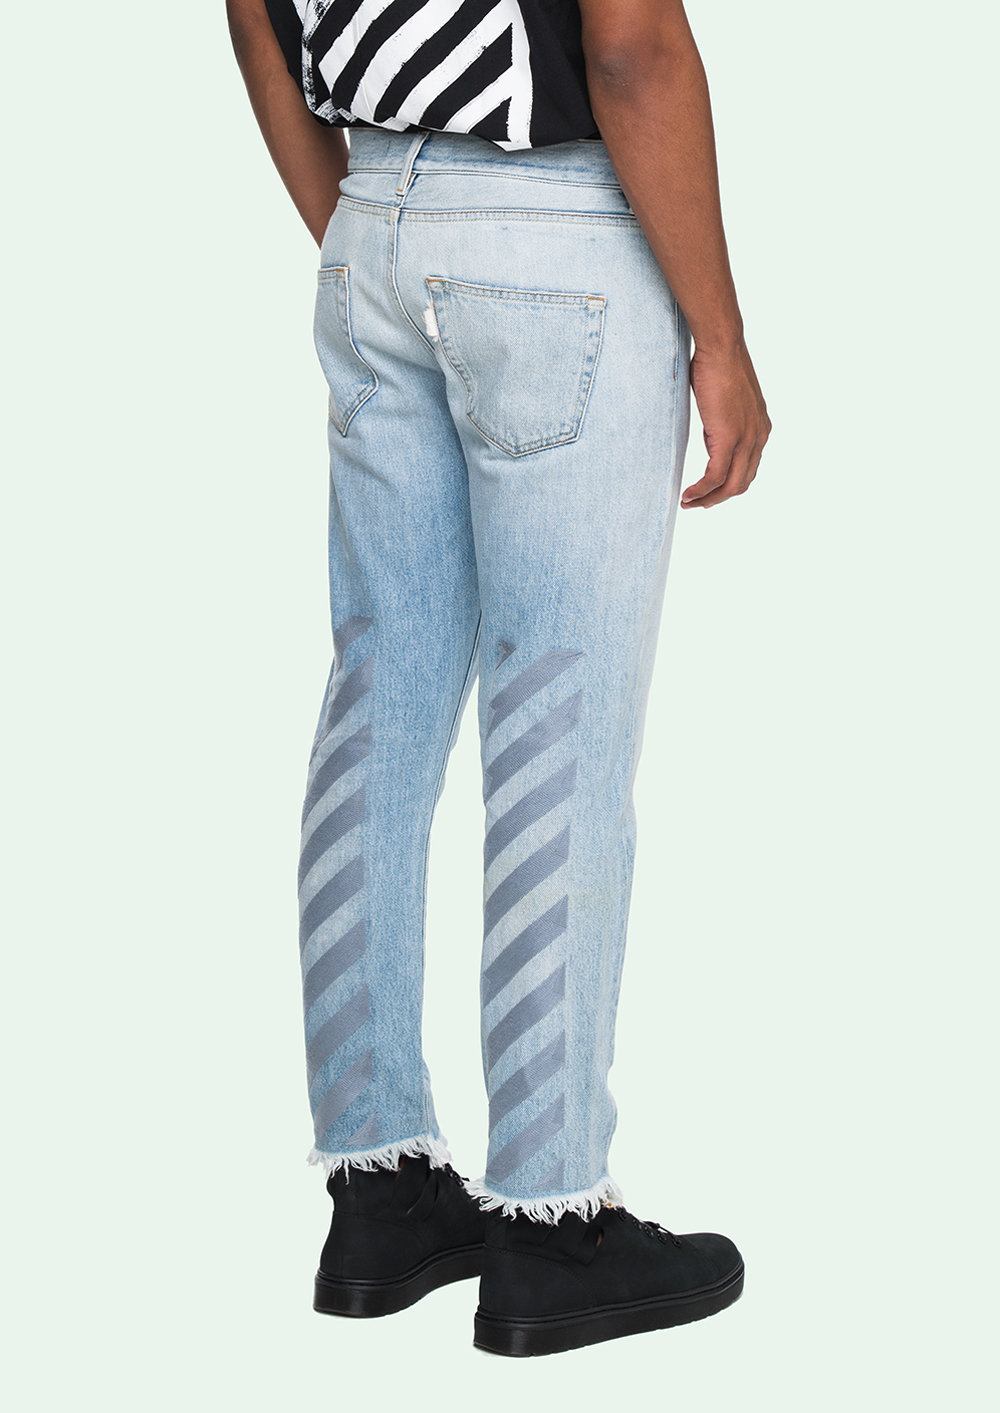 17ss MENS TOP BRAND OFF WHITE LIGHT BLUE BUTTON AND ZIP CLOSURE FIVE POCKETS JEANS